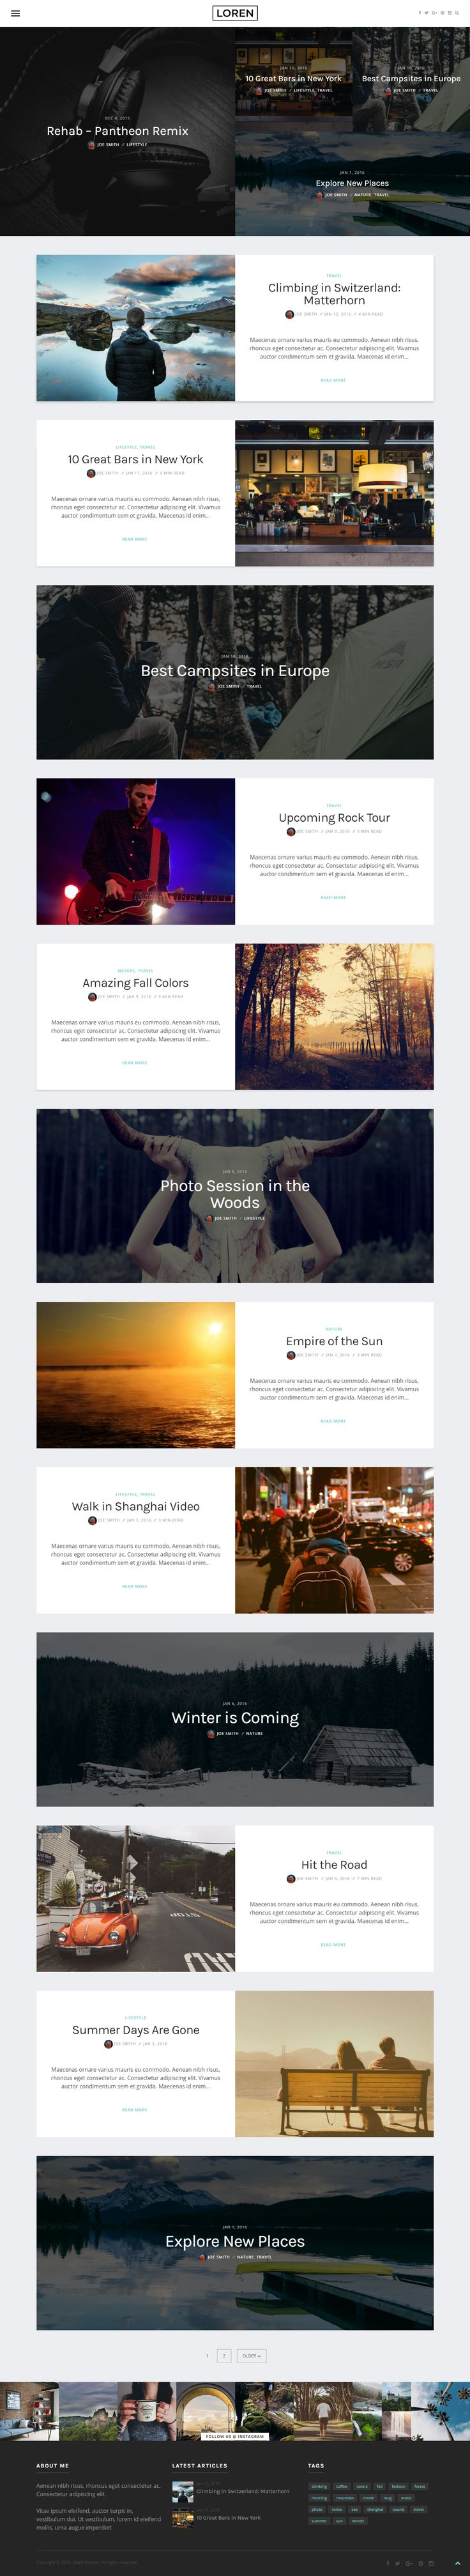 Loren - Responsive WordPress Blog Theme  Loren is a clean and modern responsive Wordpress blog theme, ready to impress your audience. This theme is perfect if you want to start a blog and focus more on writing captivating articles.  Loren comes with a minimal, lovely design and a lot of options easy to setup for styling the posts layout ( 10 variations ), sliders ( 4 ), colors, fonts. You can setup your new website in minutes ( full demo data included ).